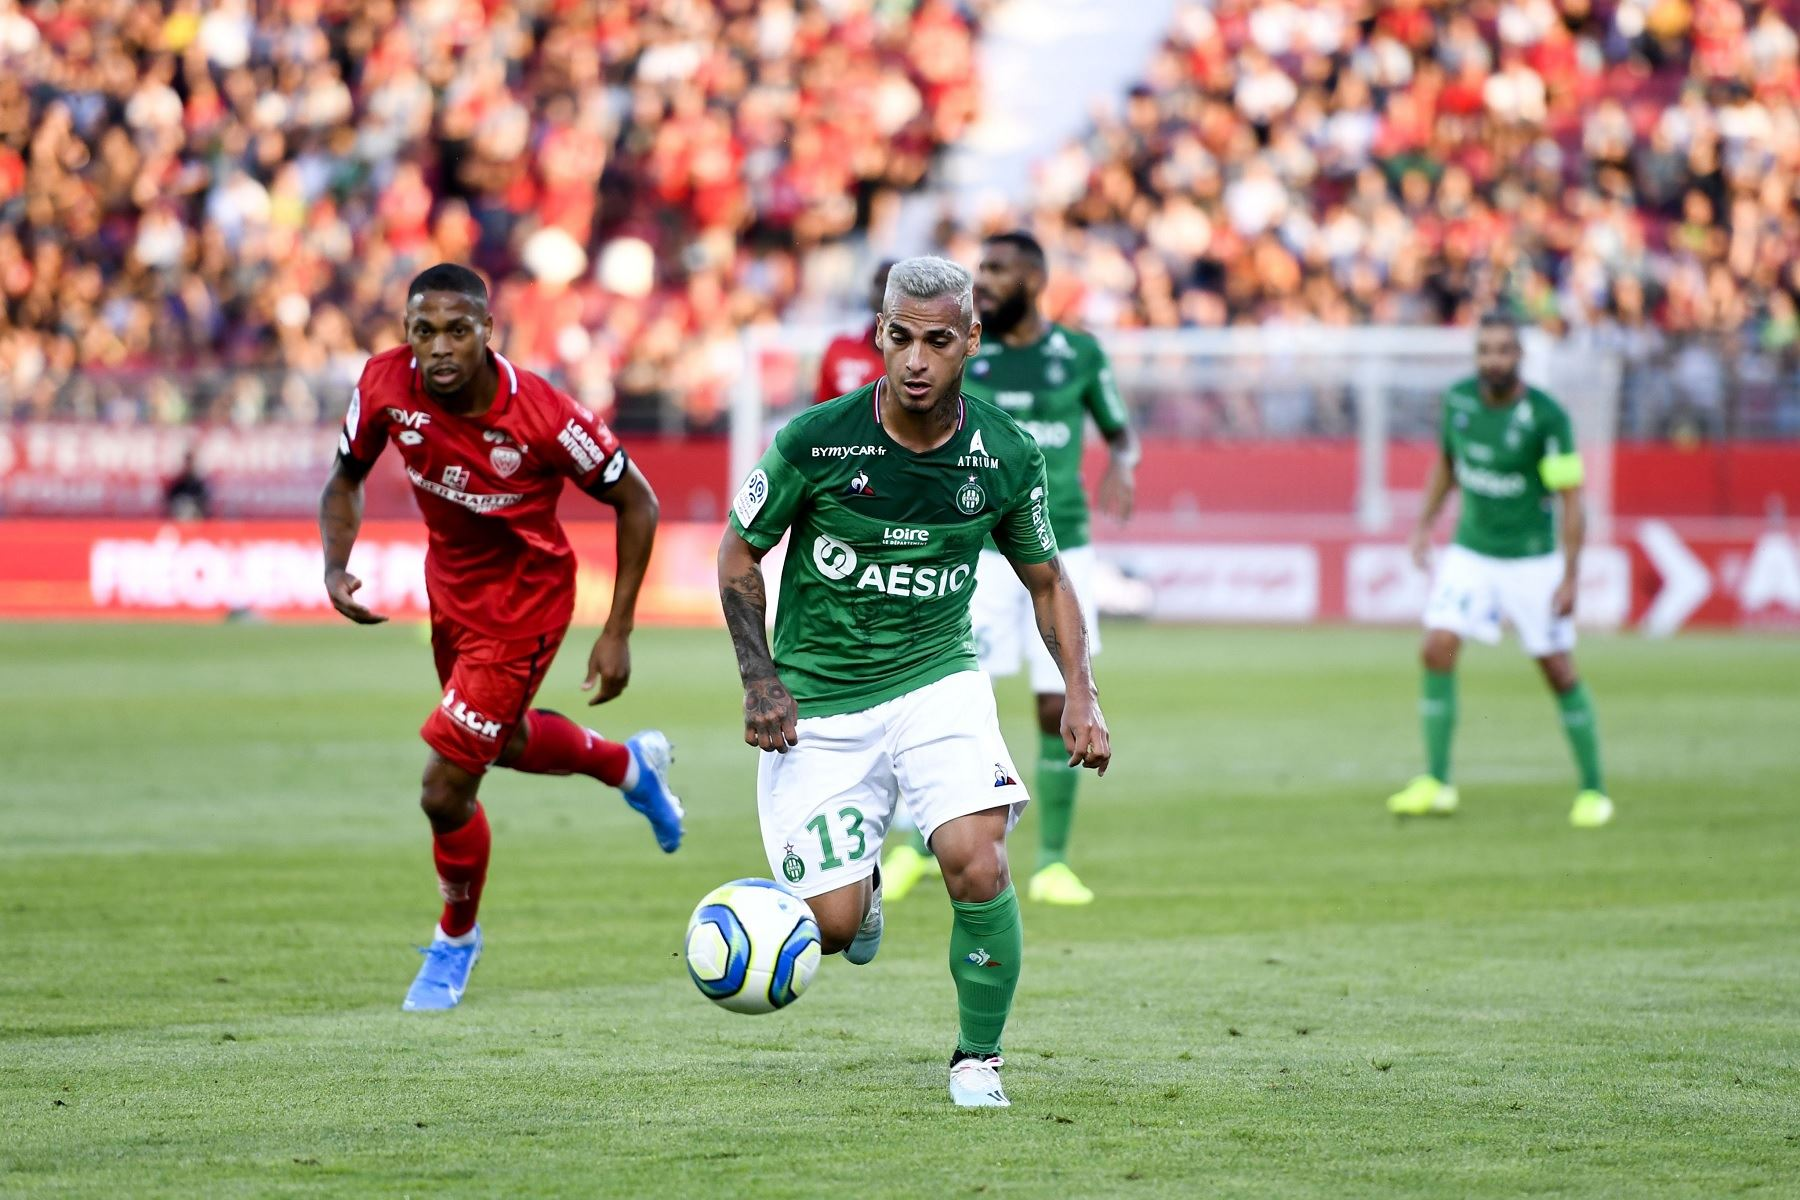 Peruvian player Miguel Trauco defends AS Saint-Étienne. Photo: Twitter/Ligue 1 Español